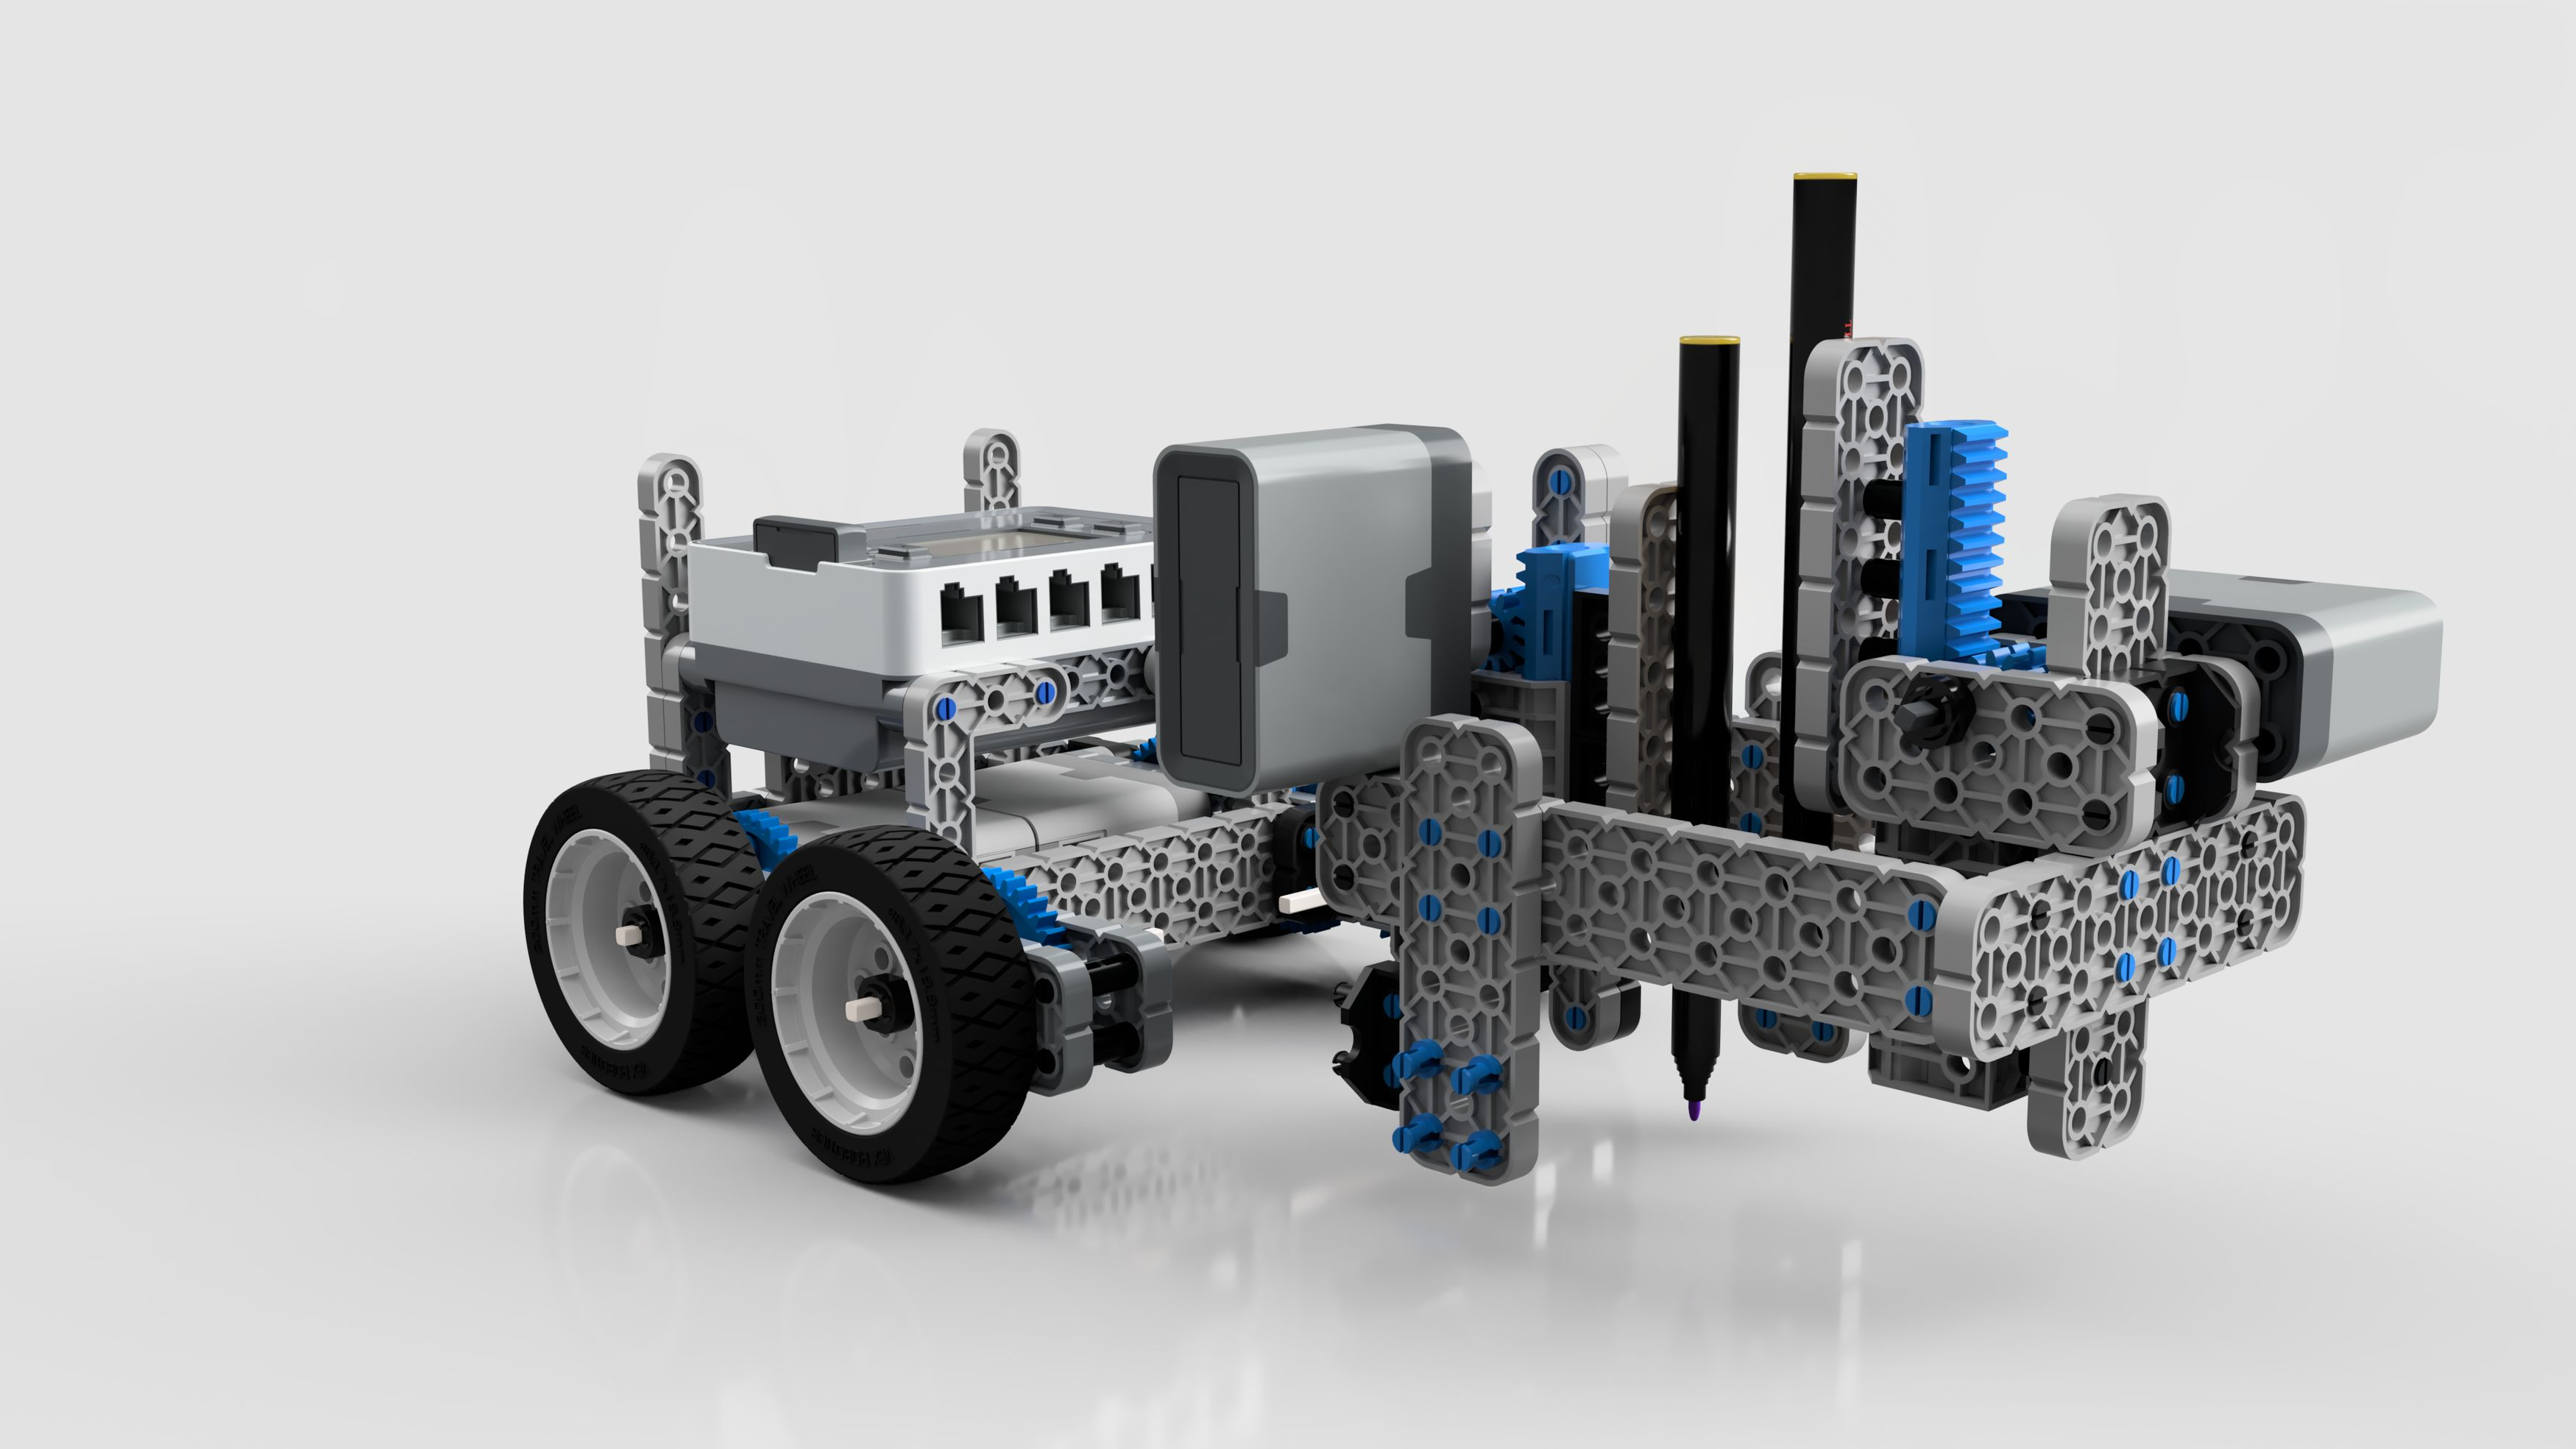 Vex-iq-robot-caneta-2020-may-24-04-58-38pm-000-customizedview9108372-png-3500-3500